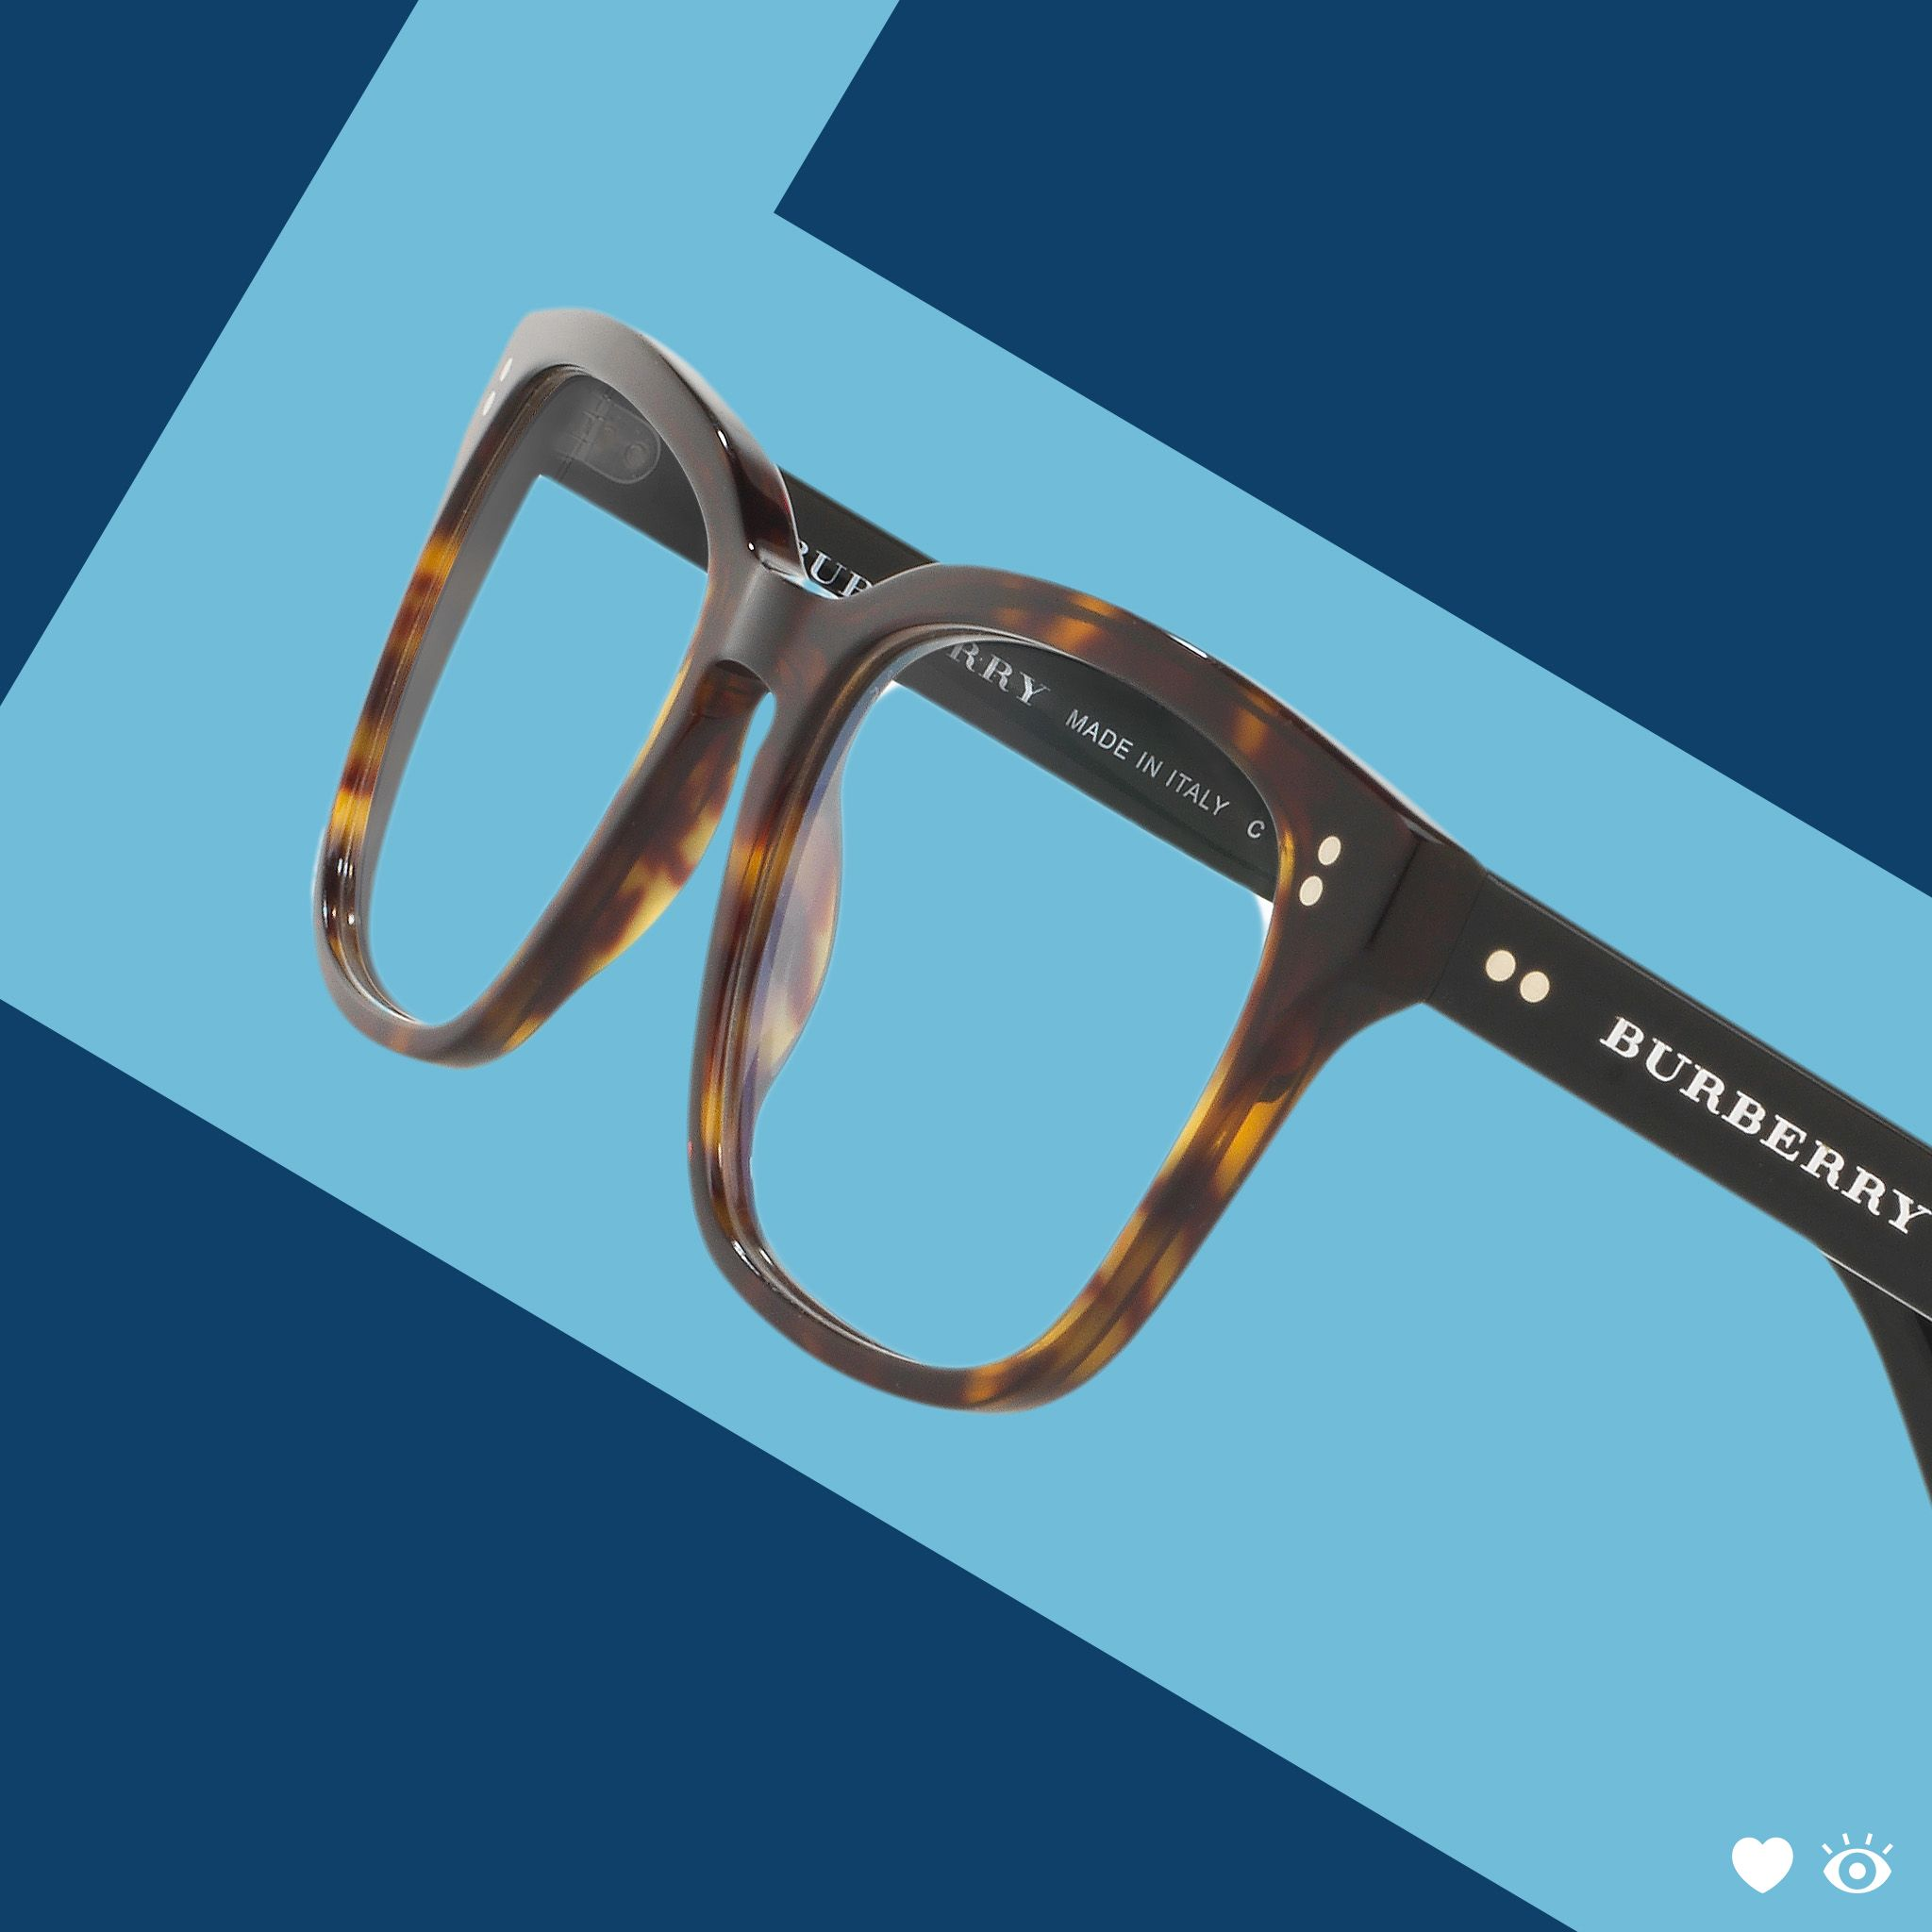 Bring The Refined Intrigue Of London Anywhere You Go With The Mr Burberry Collection Trendy Eyewear Burberry Eyewear Lenscrafters